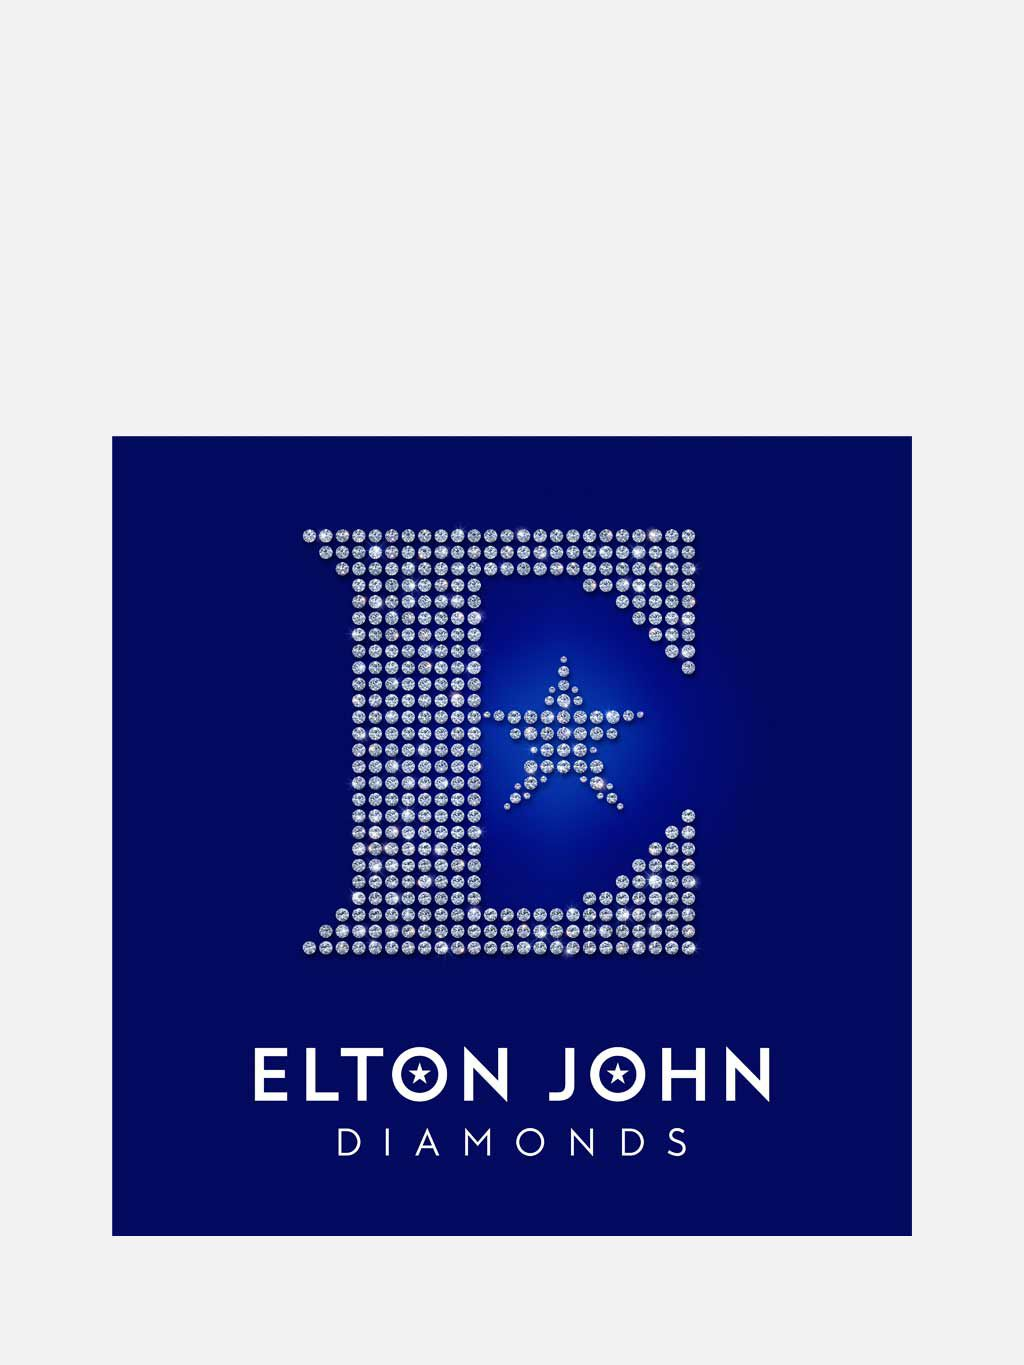 Elton John's Greatest Hits CD - Diamonds